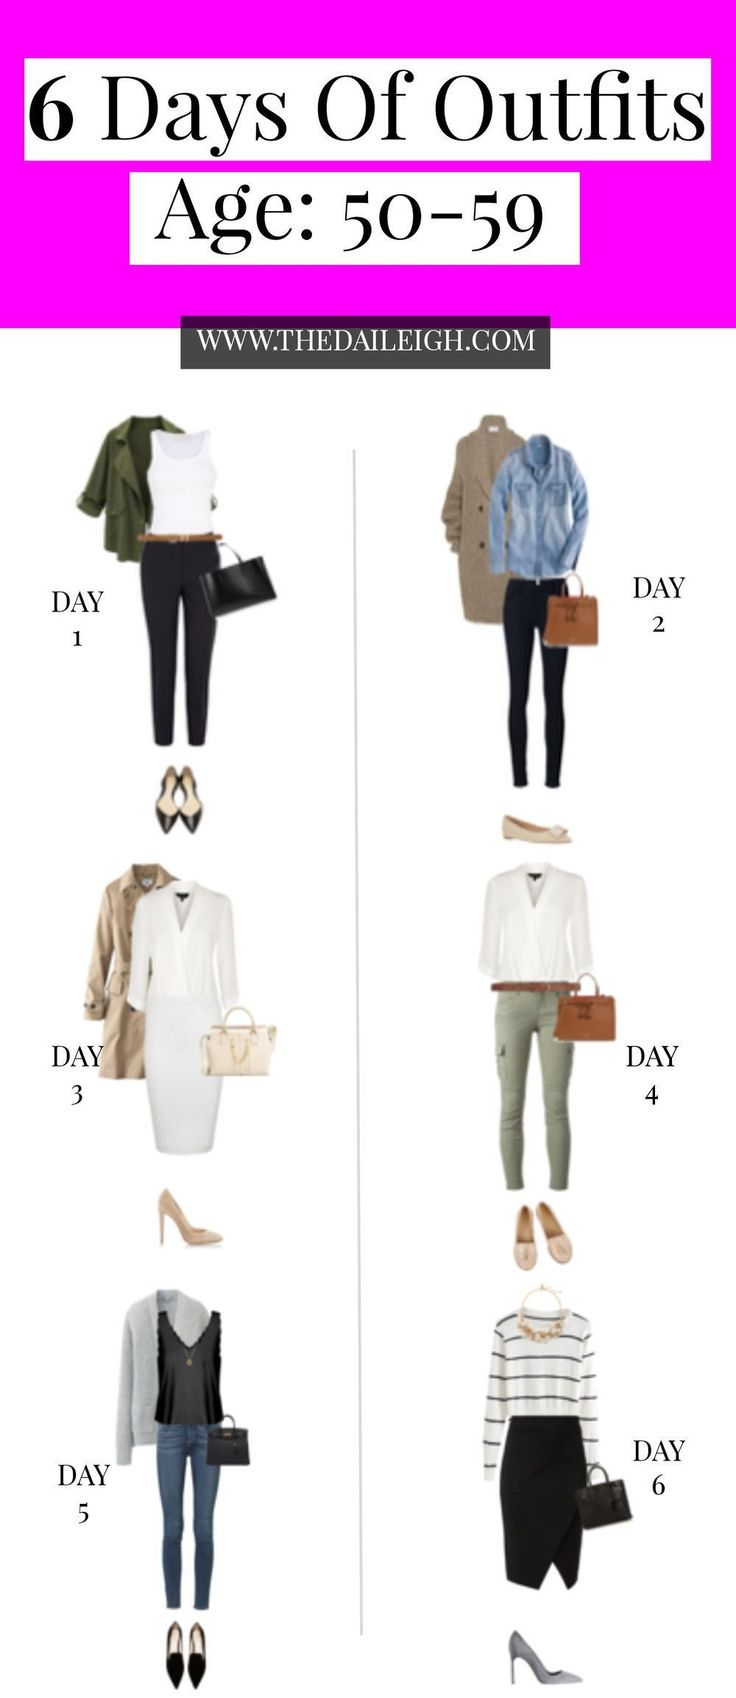 Outfit Ideas for Women Over 50 | Fashion Tips for Women Over 50 | Wardrobe Basics